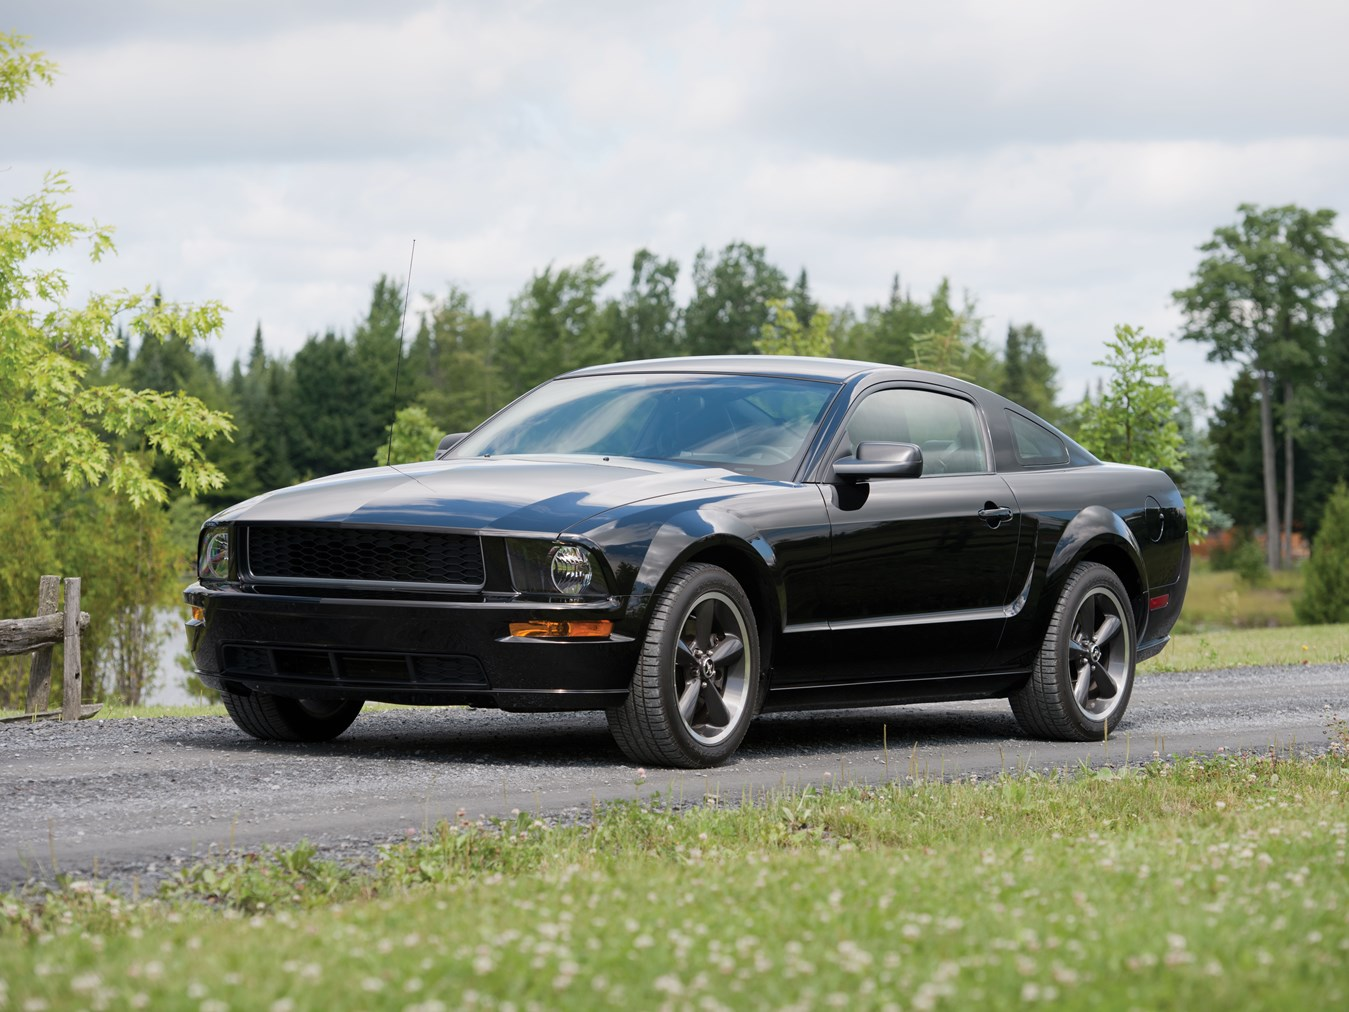 rm sotheby 39 s 2008 ford mustang bullitt auburn fall 2014. Black Bedroom Furniture Sets. Home Design Ideas